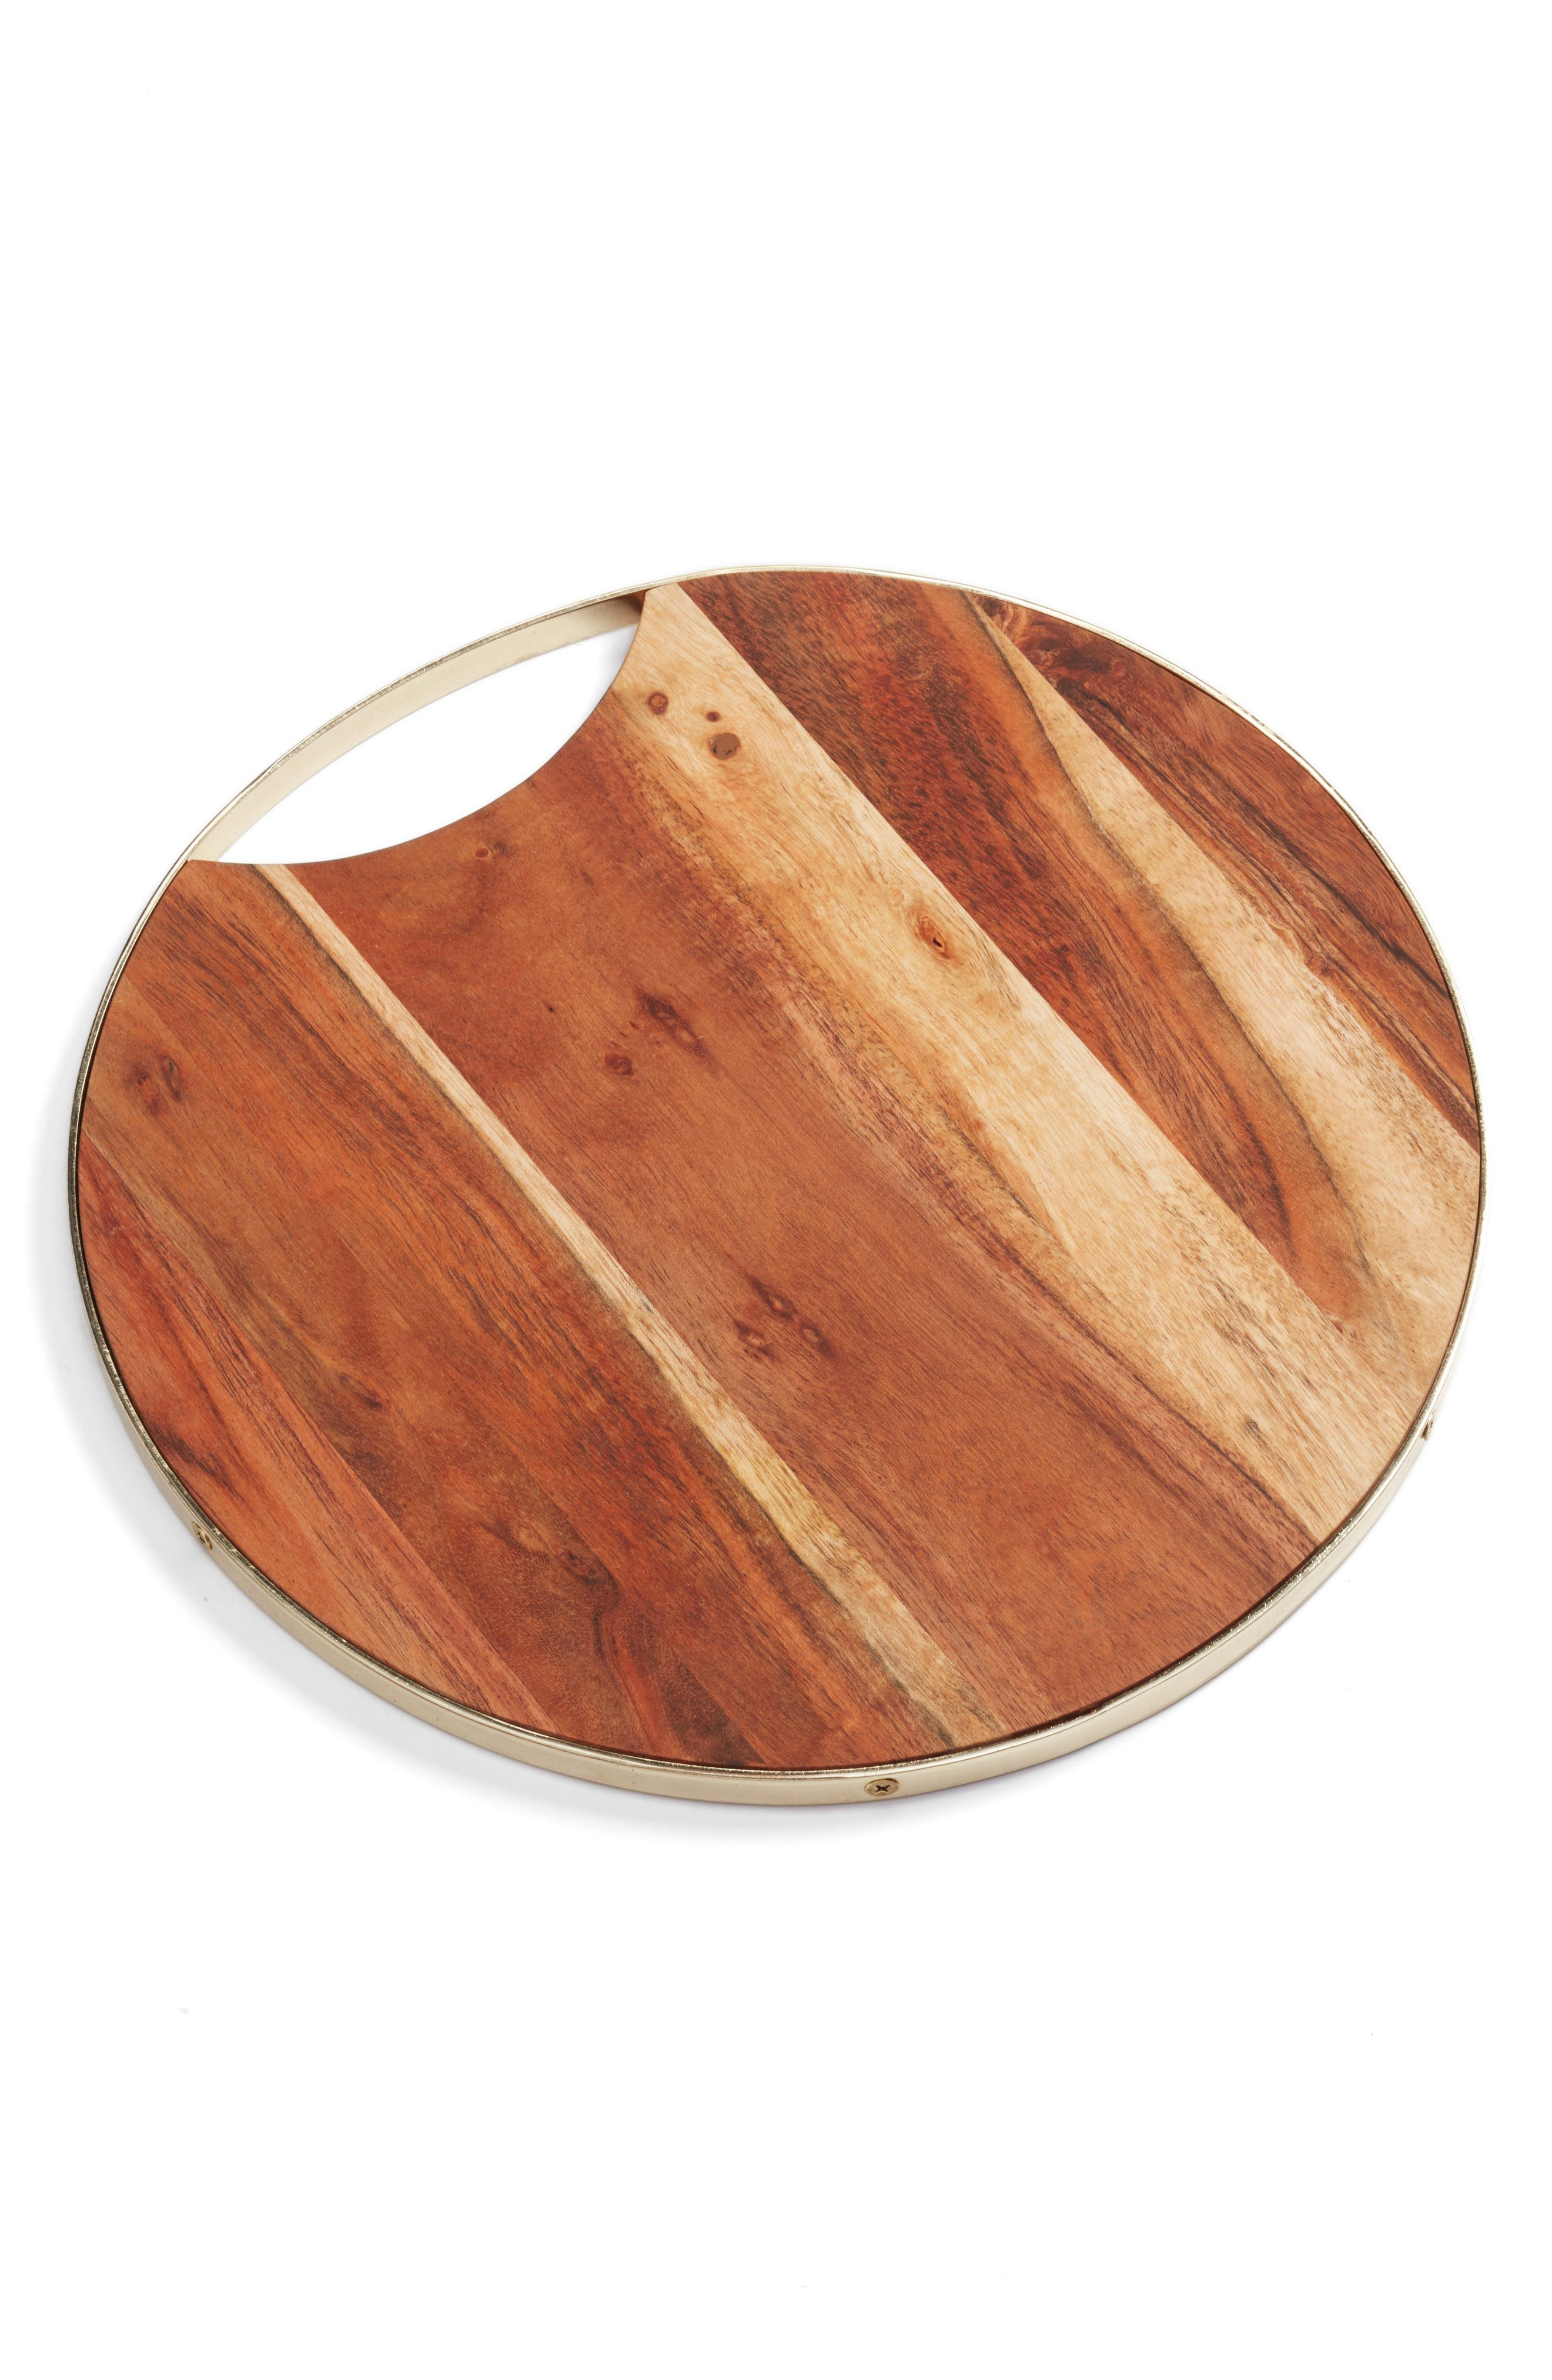 Nordstrom at Home Round Wood Cutting Board